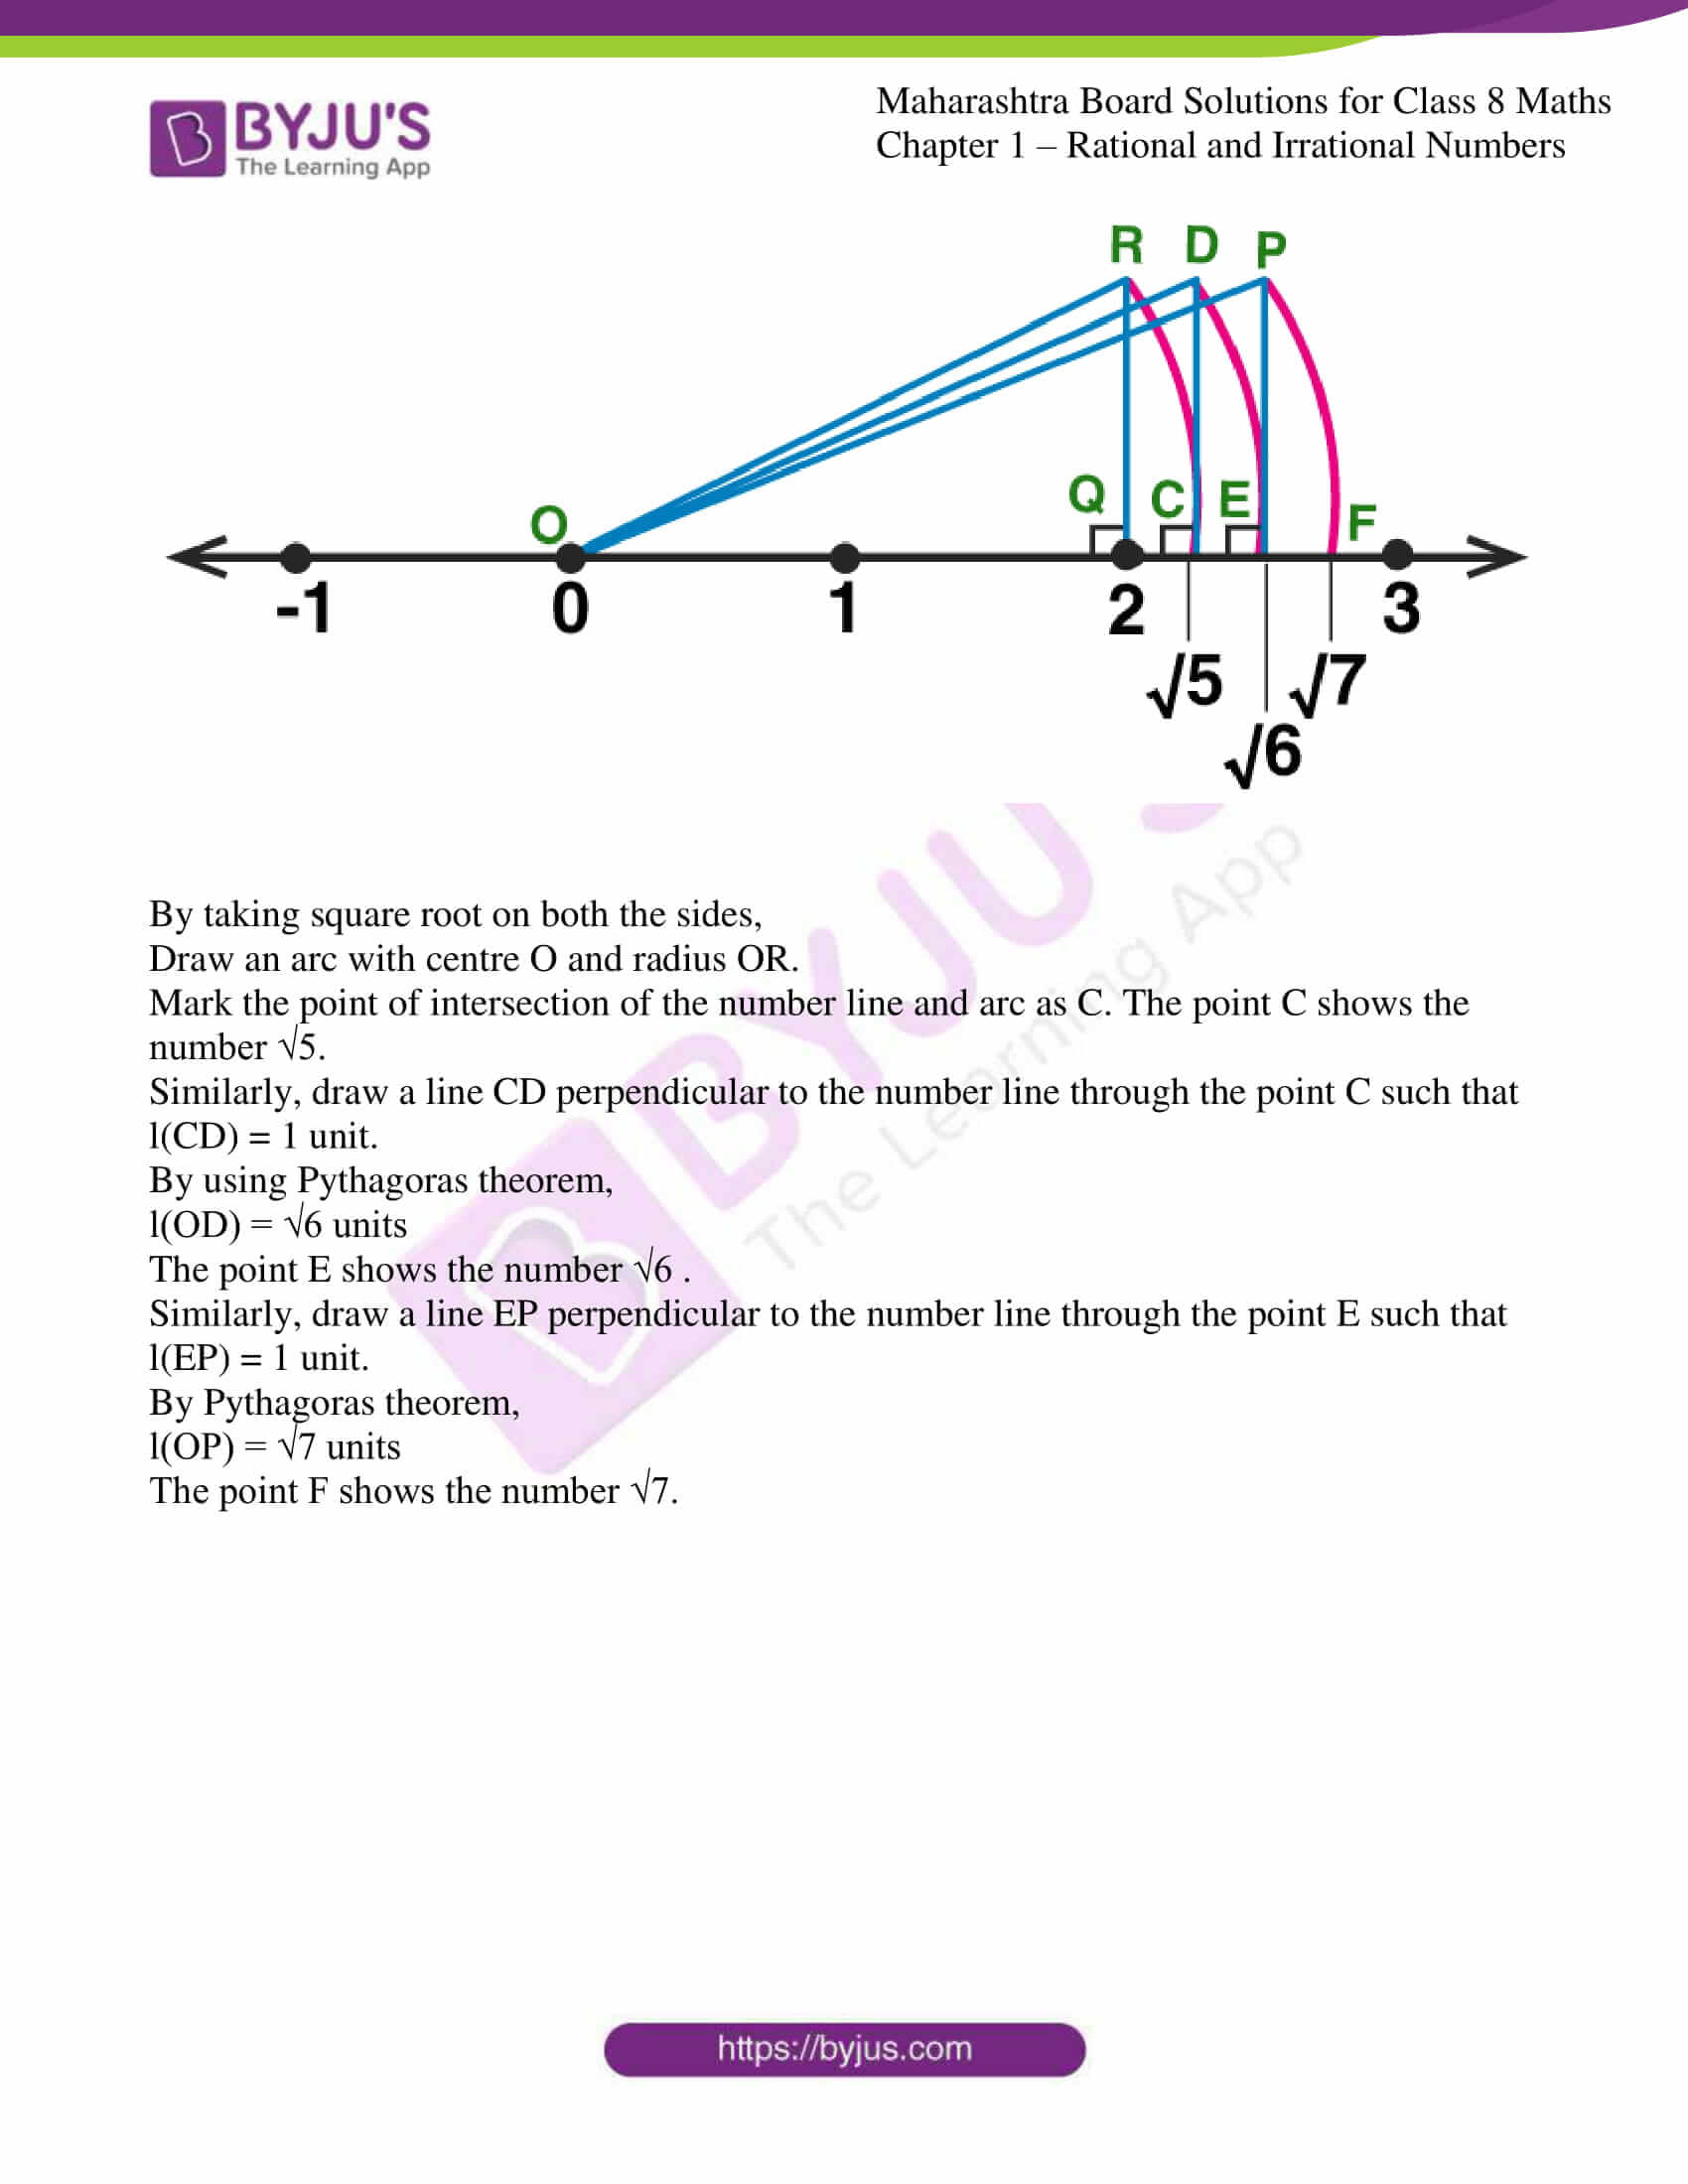 msbshse sol for class 8 maths chapter 1 13